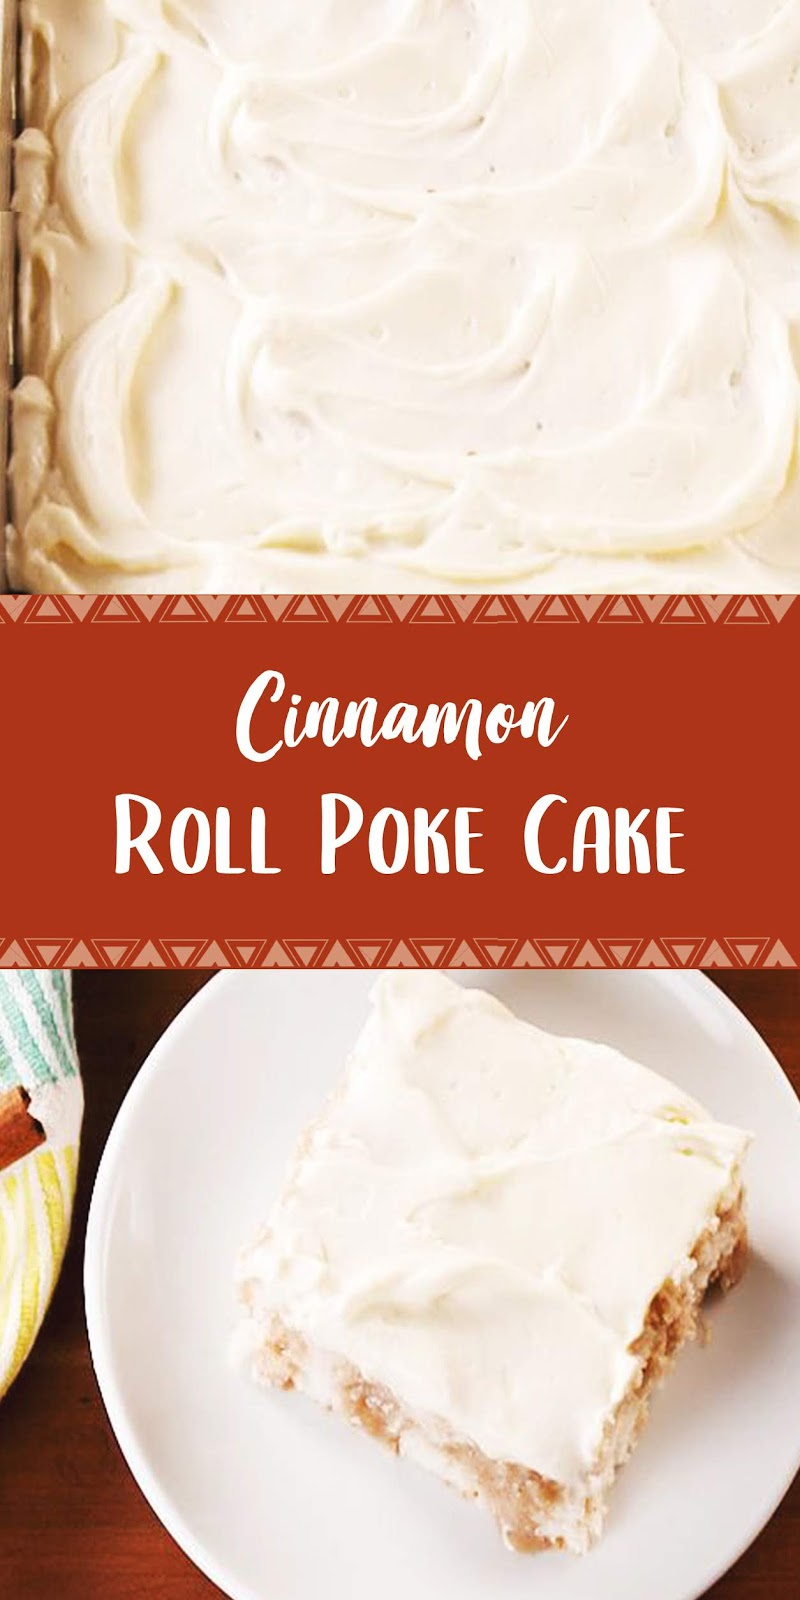 Cinnamon Roll Poke Cake | Healthy Recipes #cinnamonrollpokecake